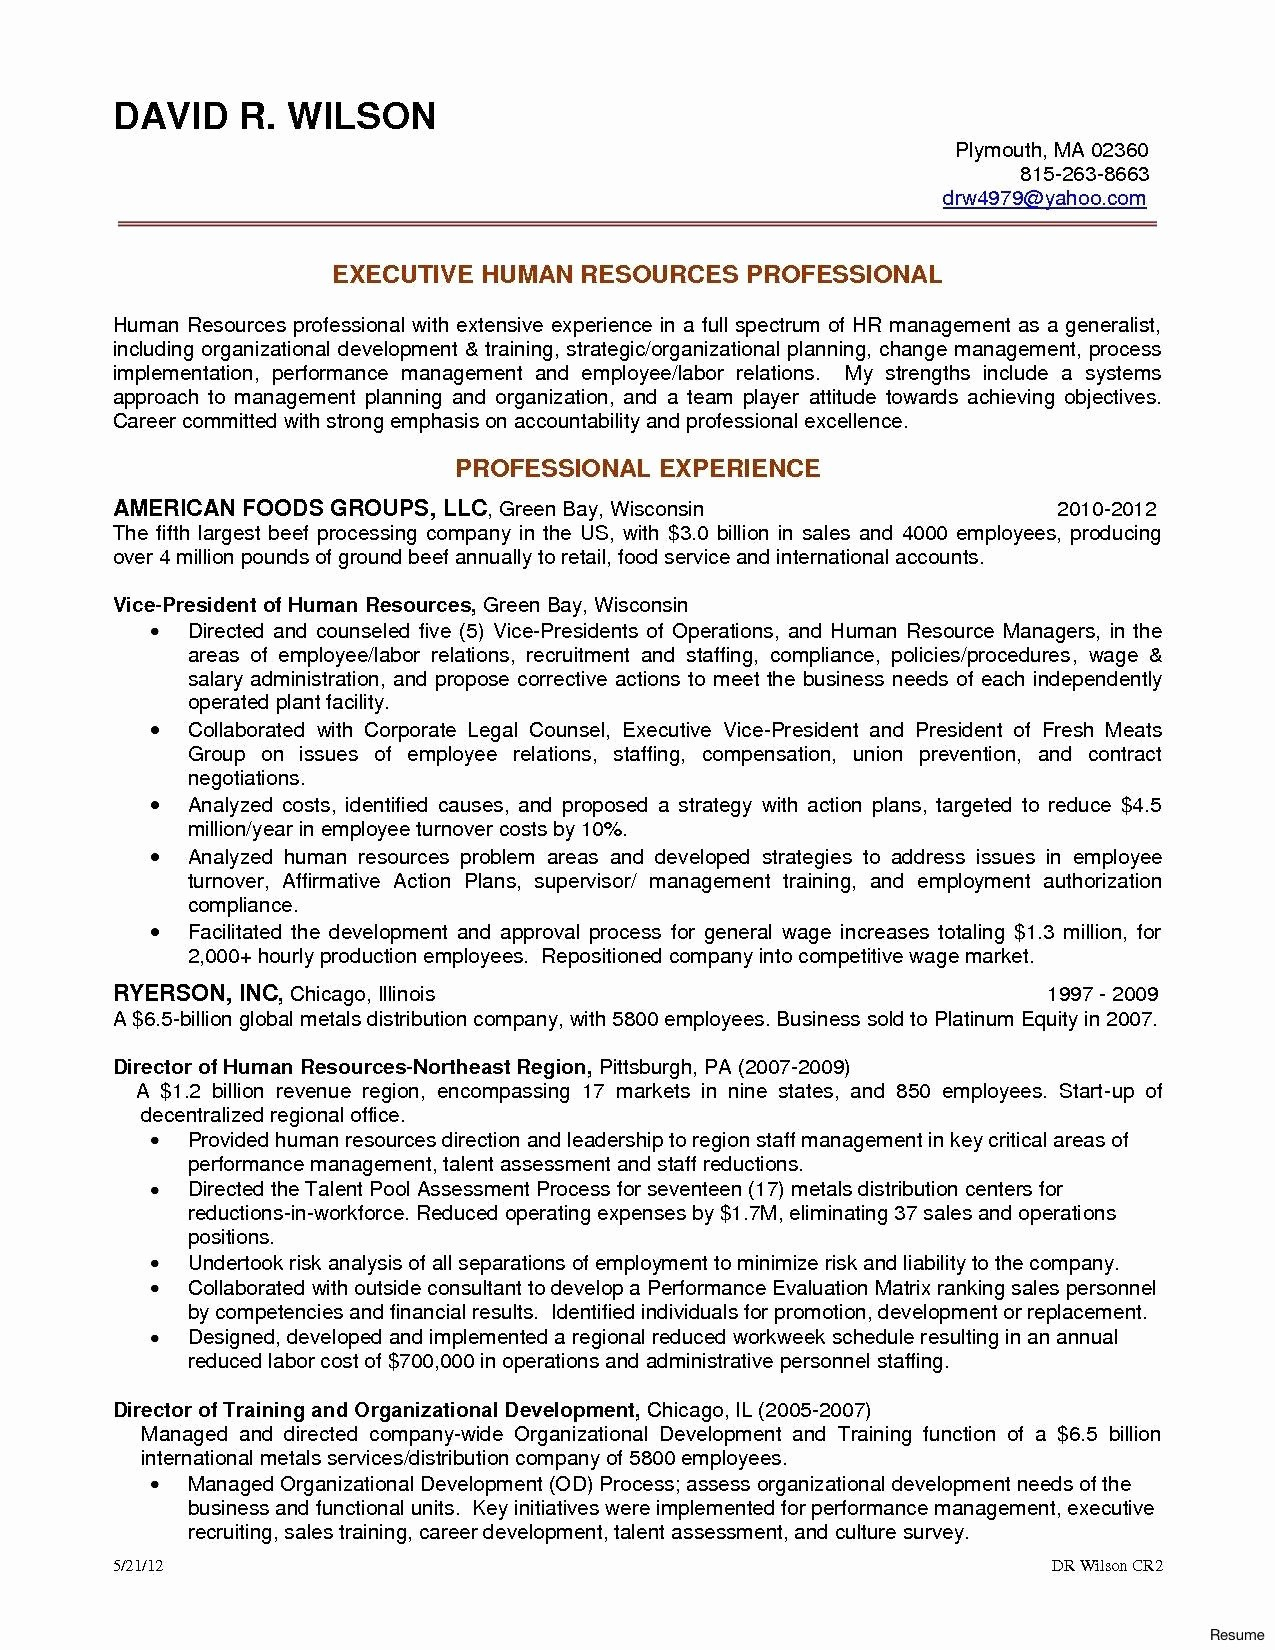 Sales Representative Job Description Resume - Sales Representative Job Description Resume